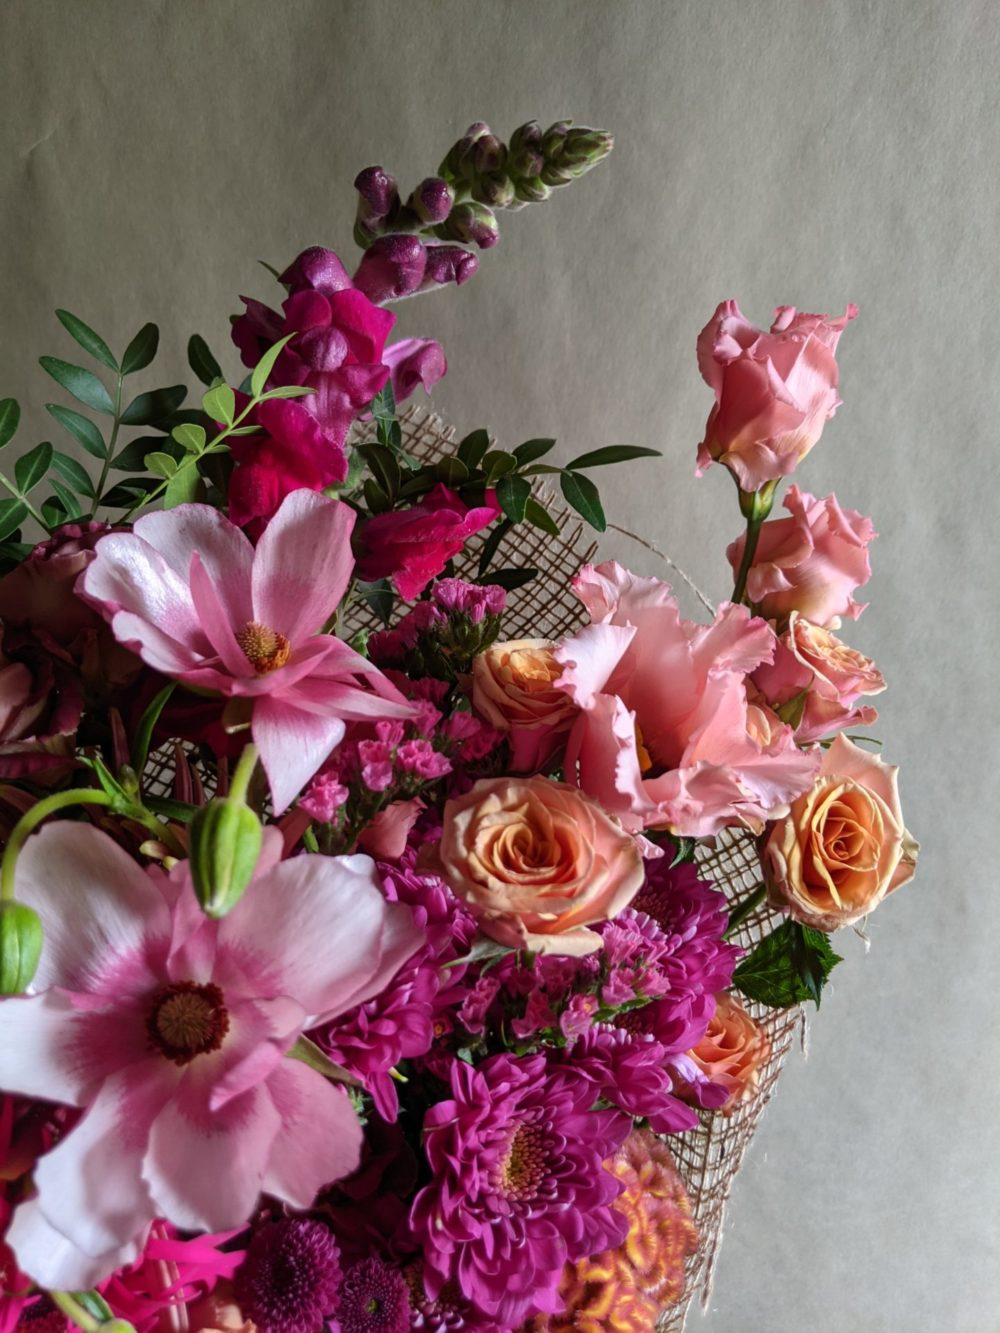 Next-day flower delivery in the UK